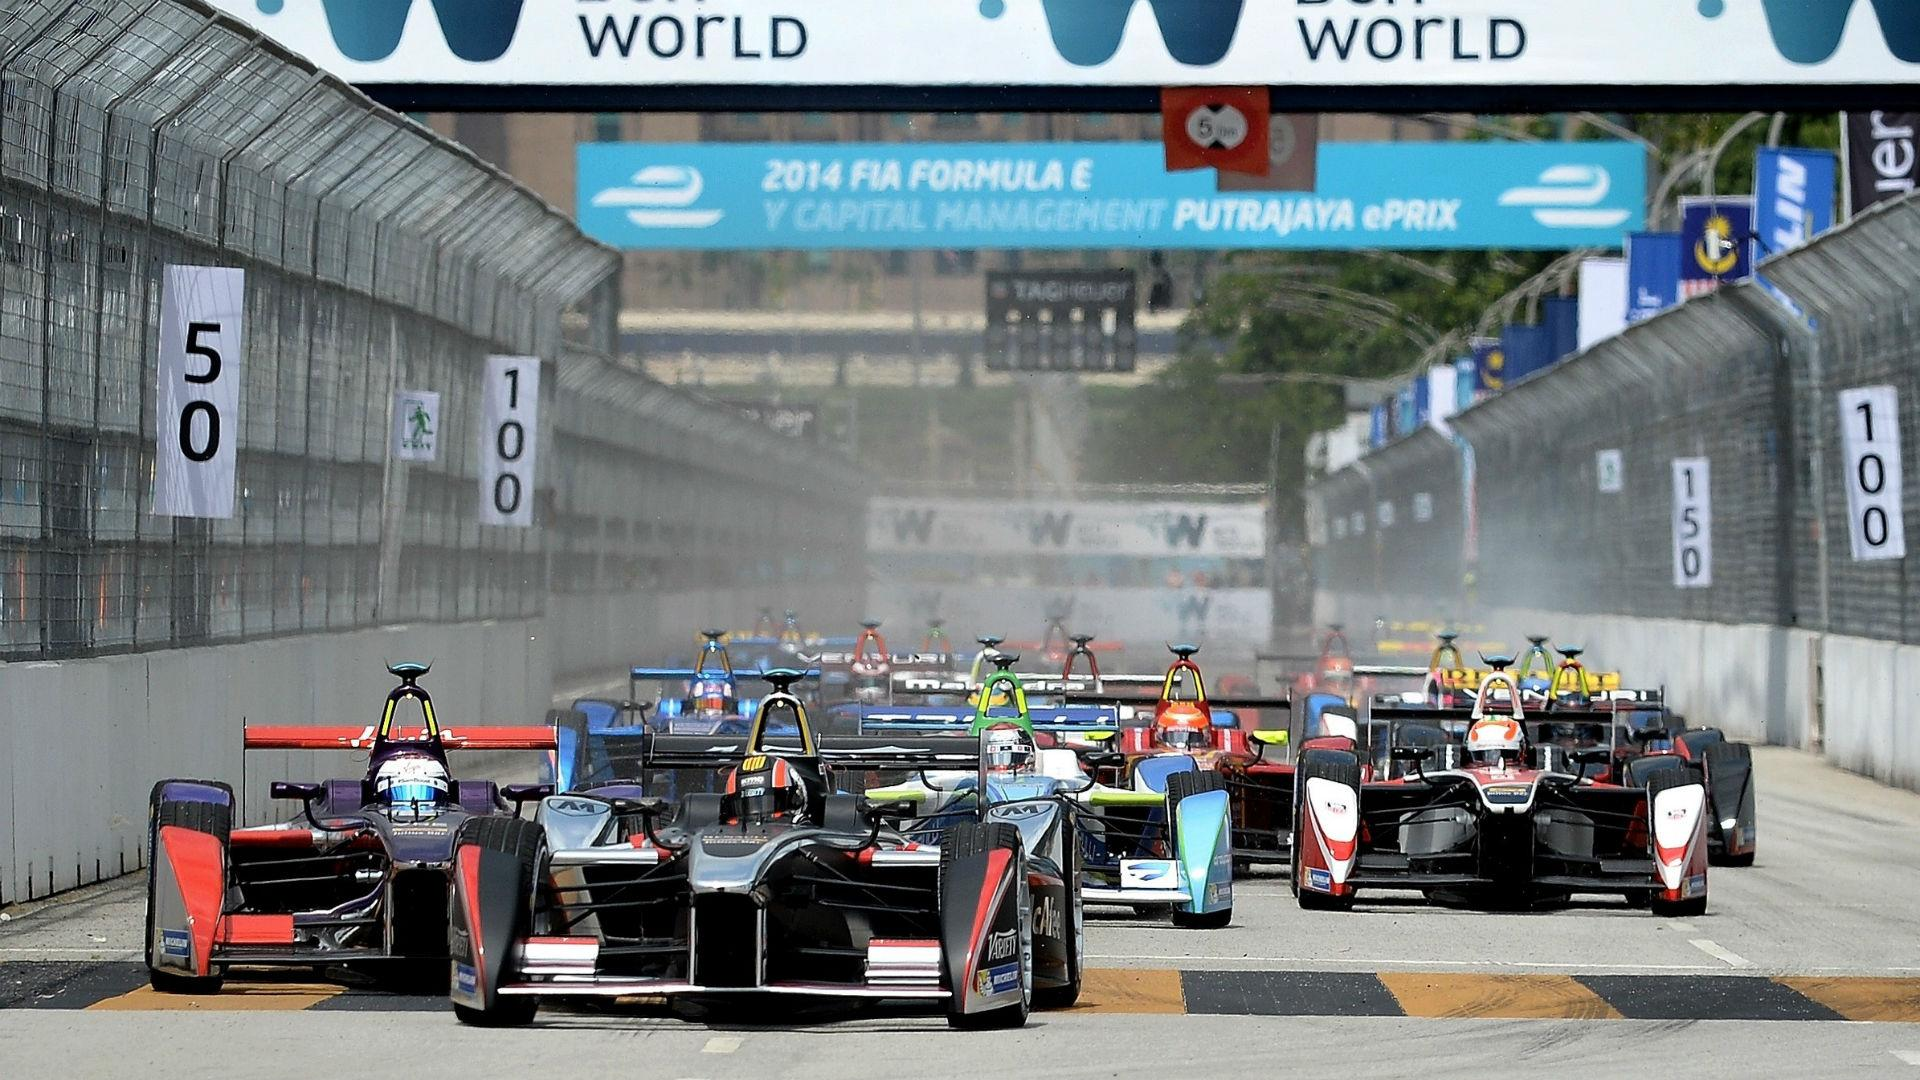 Formula E to launch world championship for driverless electric cars